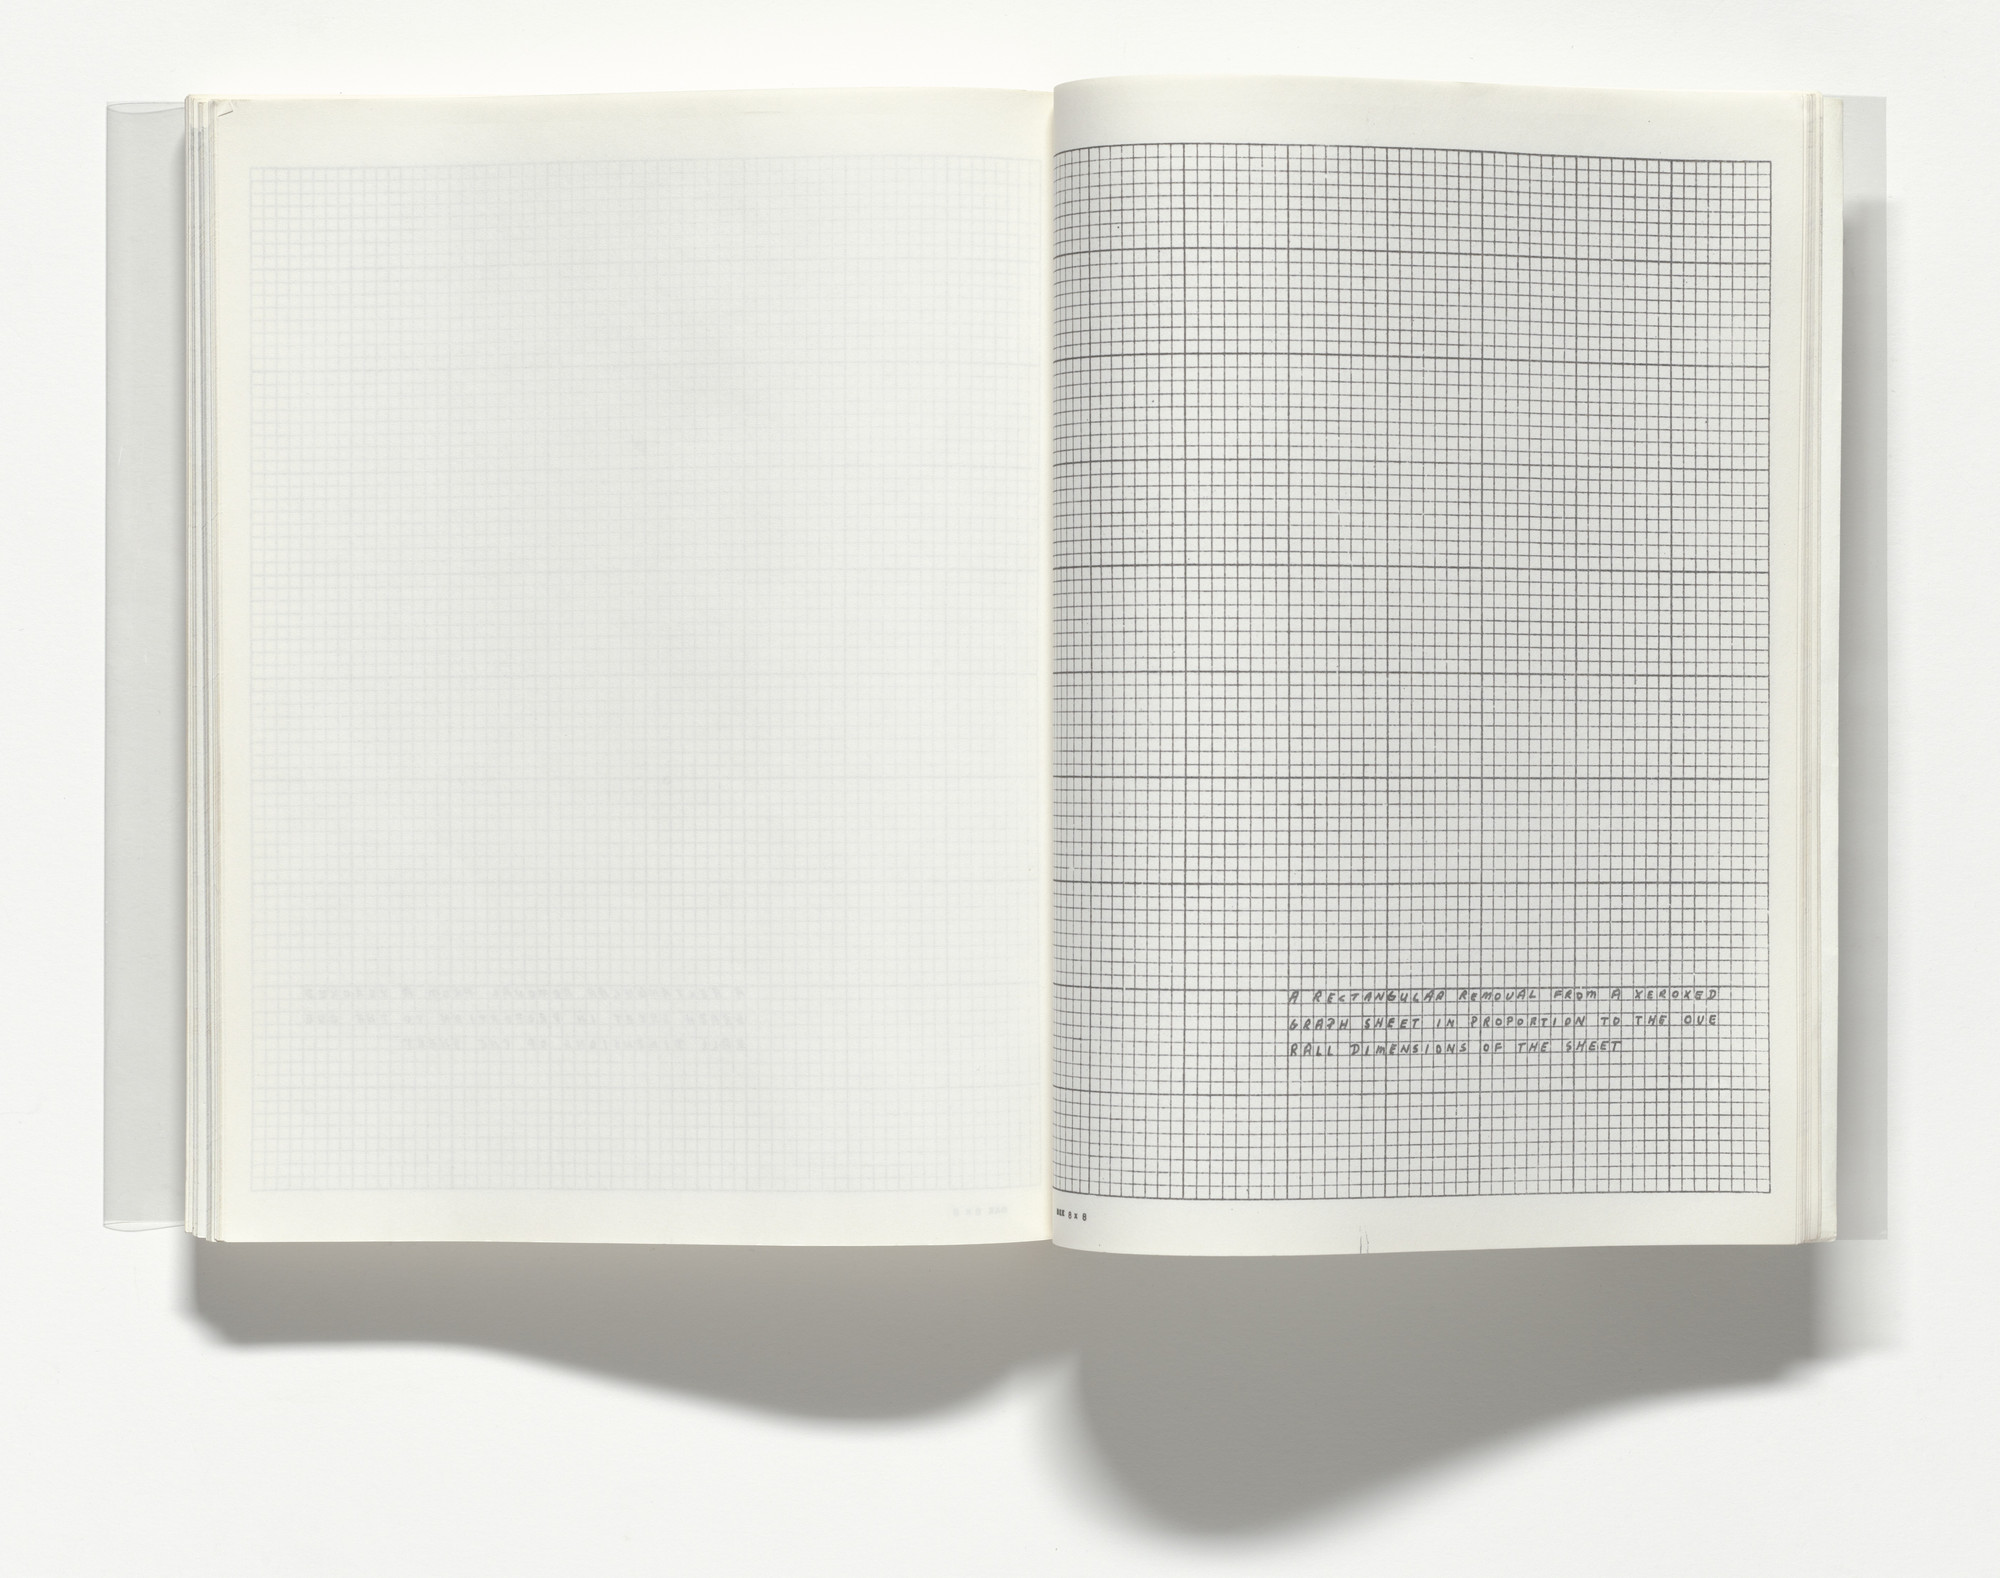 Lawrence Weiner. 25 plates from Untitled (Xerox Book). 1968